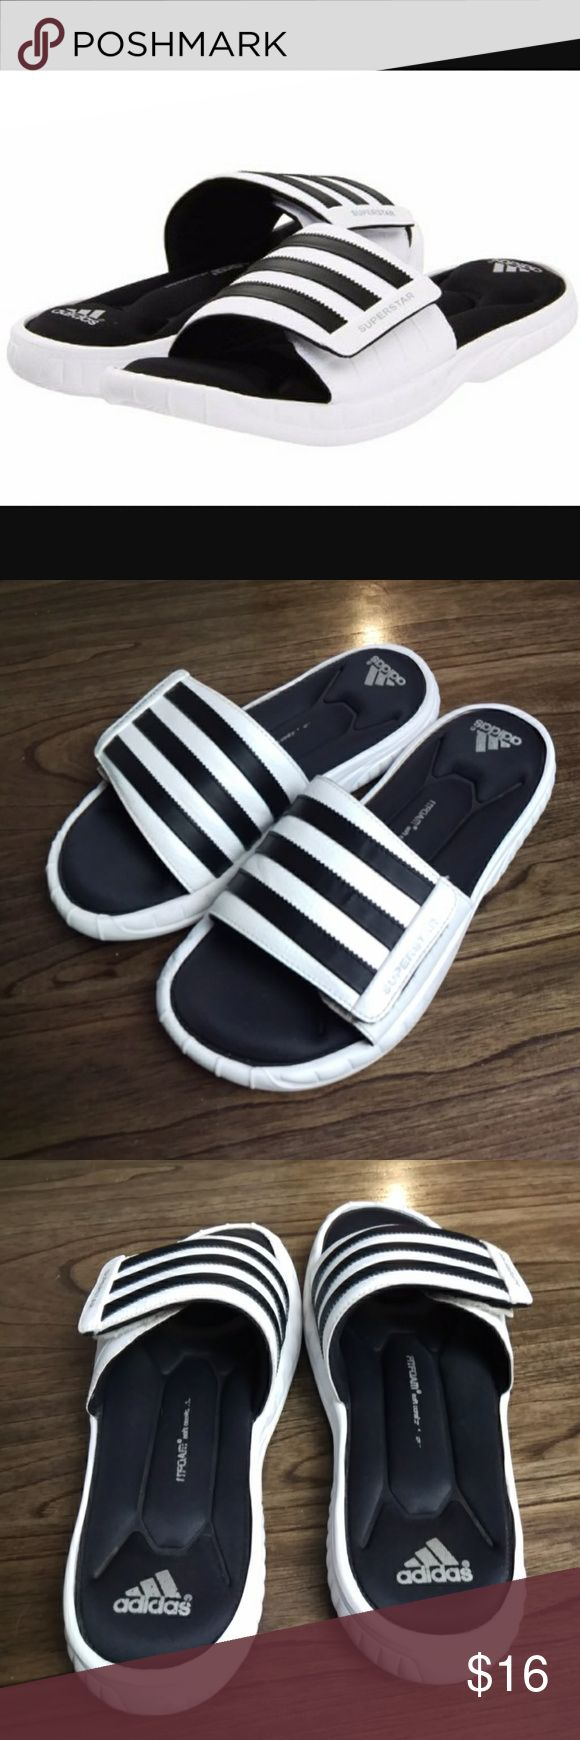 Adidas Superstar FitFoam Men's Slip-on Sandals Pre-owned in good condition. Size 8 Sporting the classic adidas three stripes, our slide sandals will keep you fabulously cool when you're out and about enjoying the warm weather. adidas Shoes Loafers & Slip-Ons